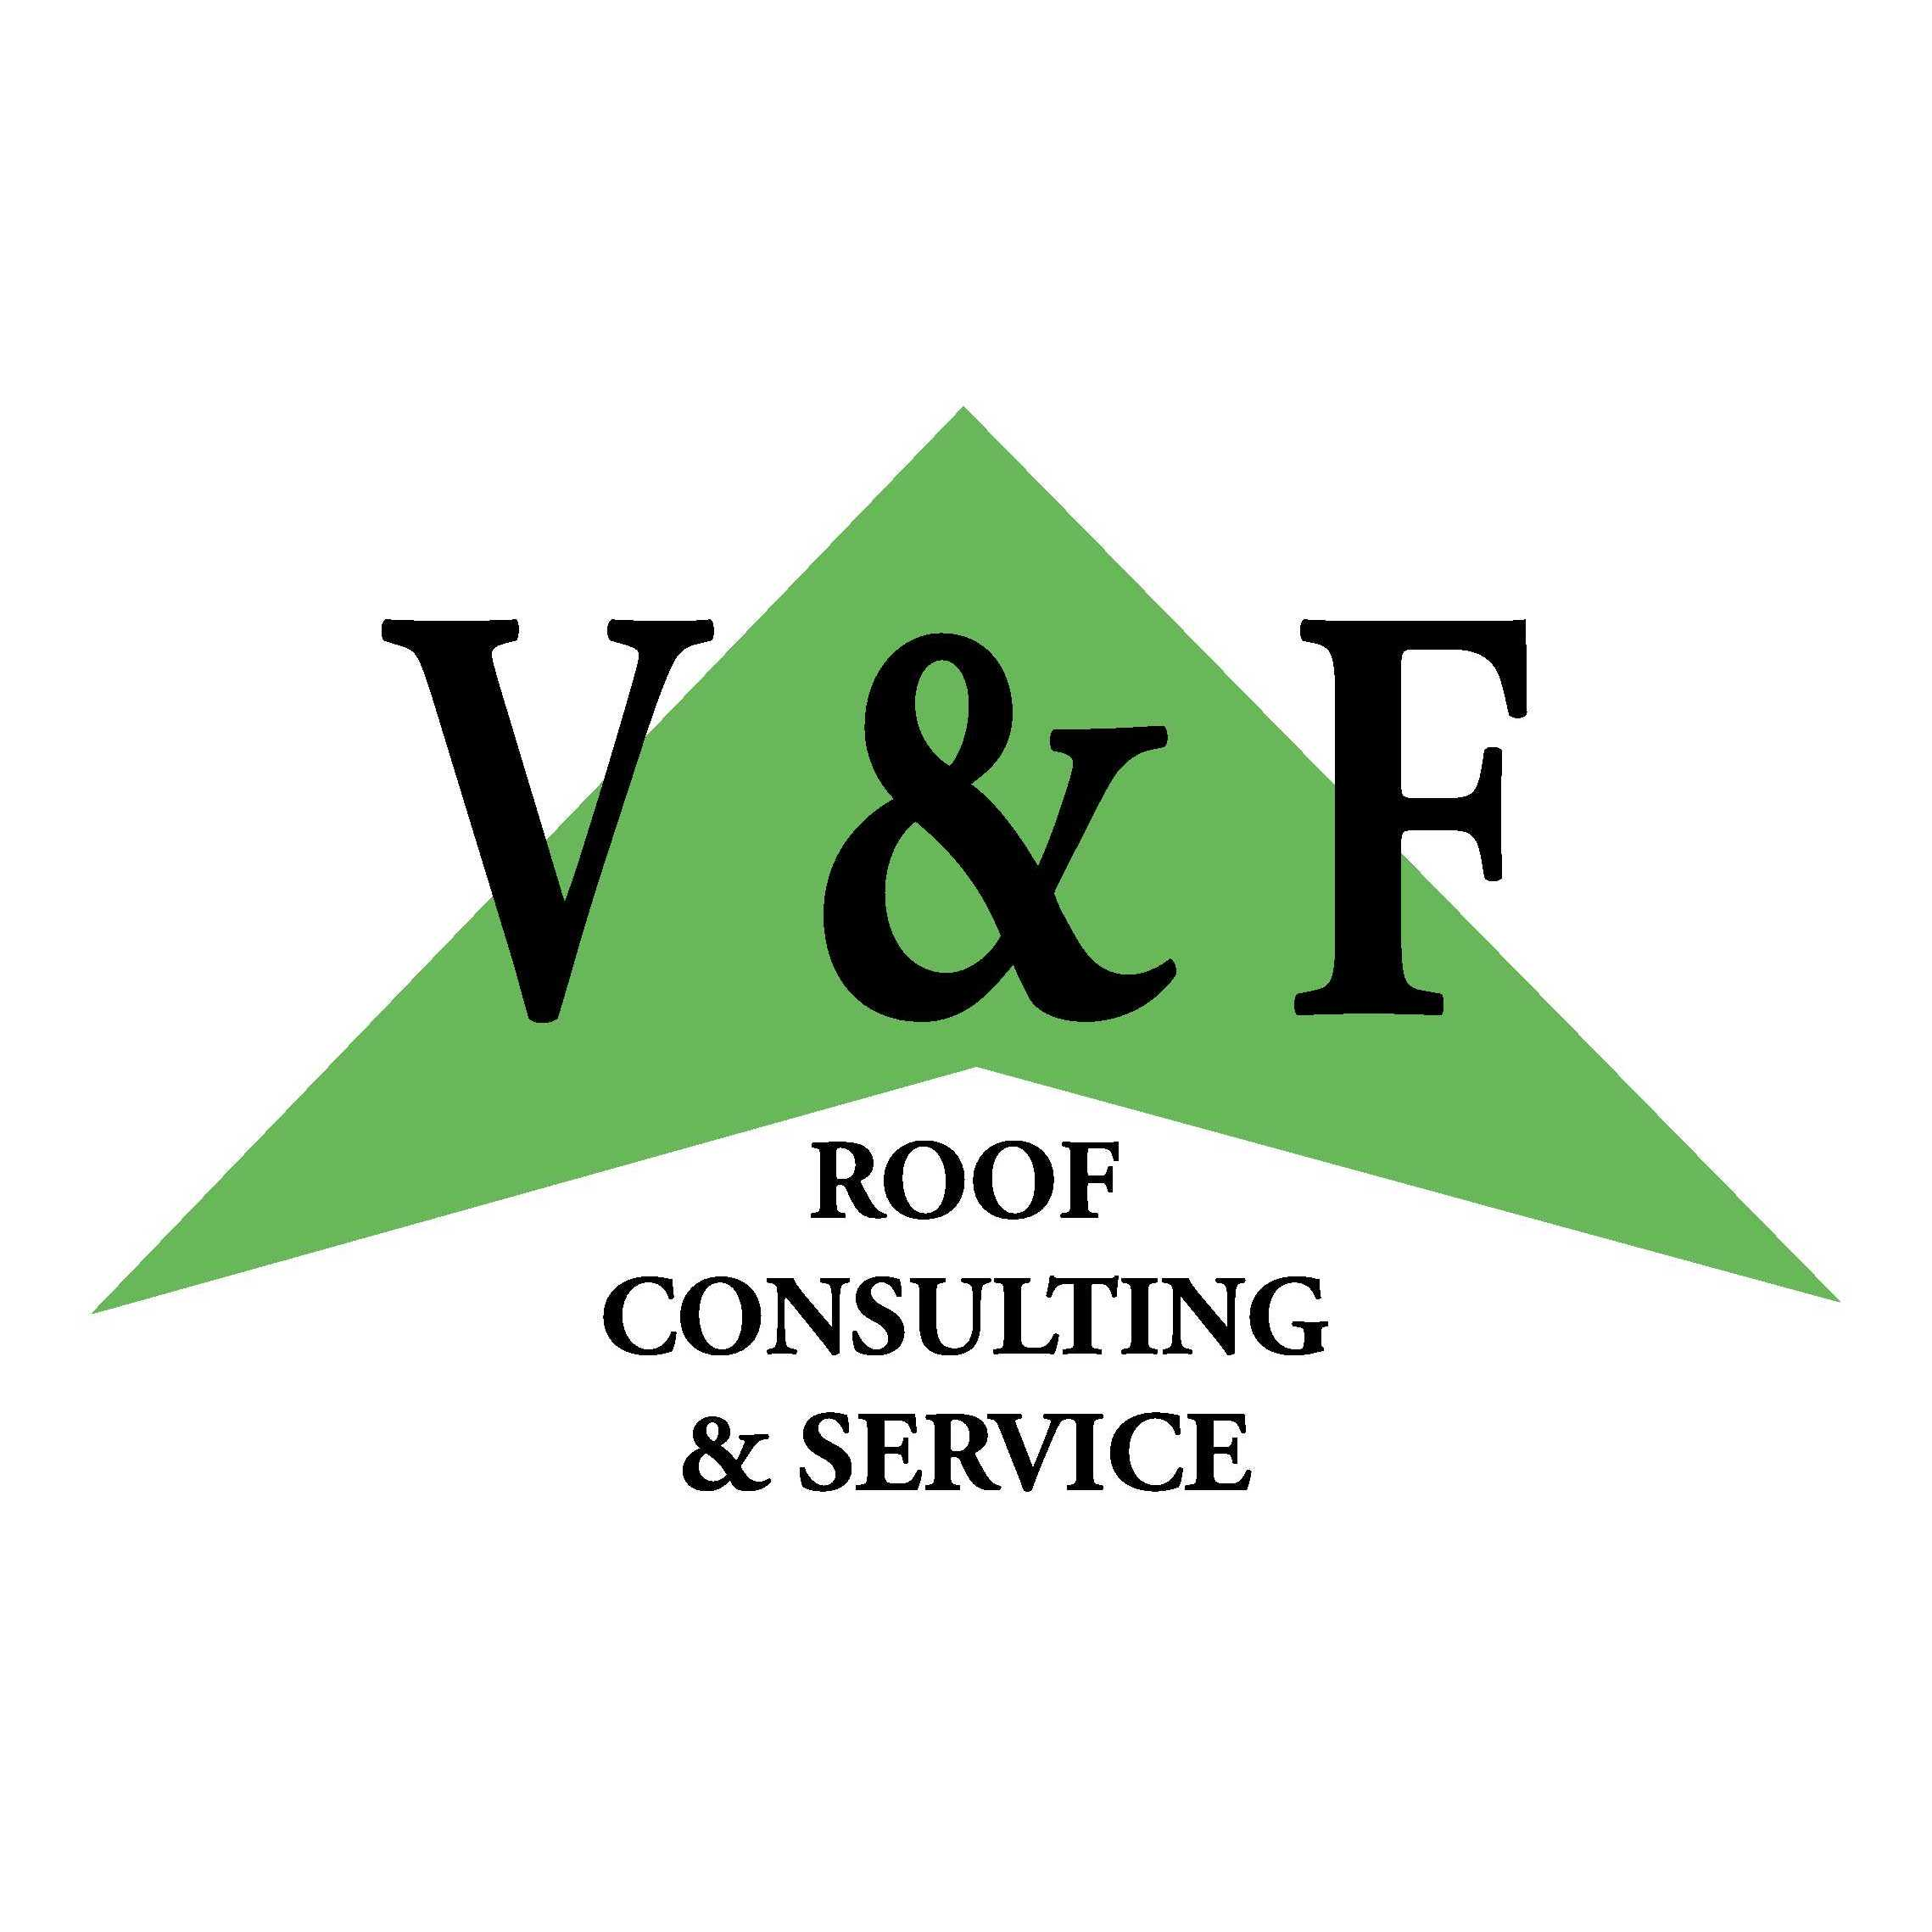 V & F Roof Consulting & Service - Pewaukee, WI - Roofing Contractors